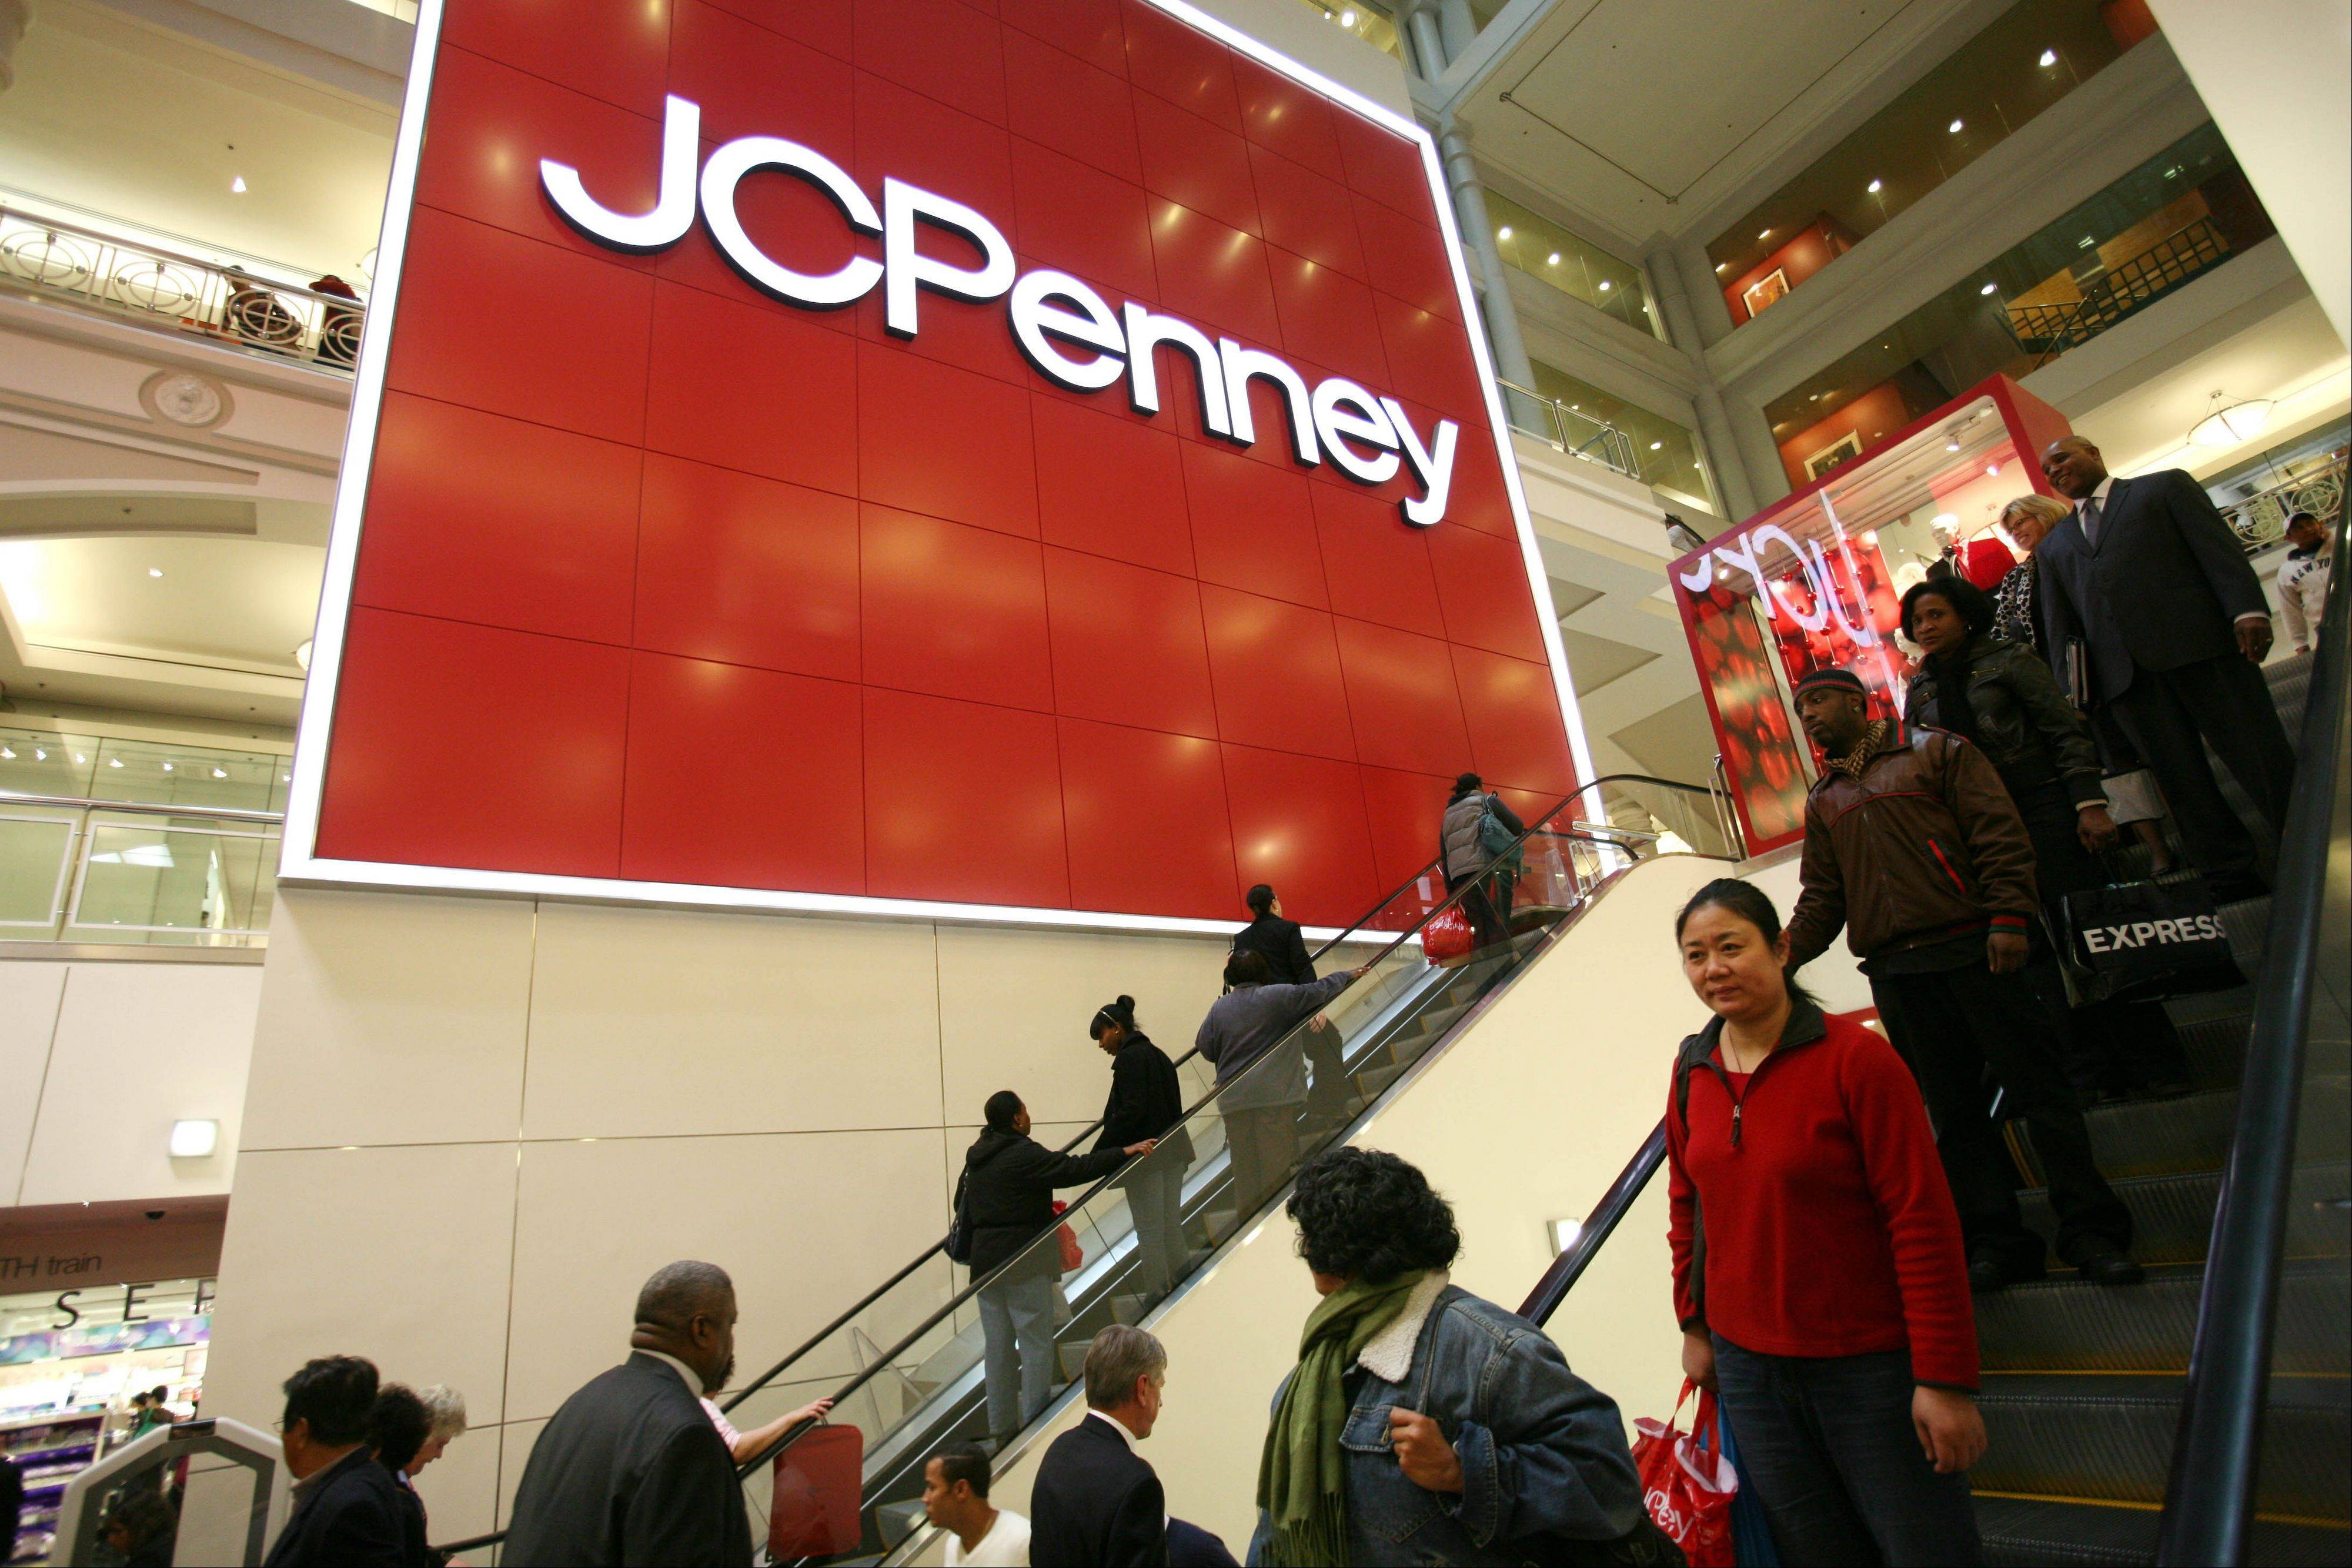 J.C. Penney Co. is reporting a bigger-than-expected loss and plummeting sales for the third quarter as its customers are still not buying its pricing plan that gets rid of hundreds of discounts.